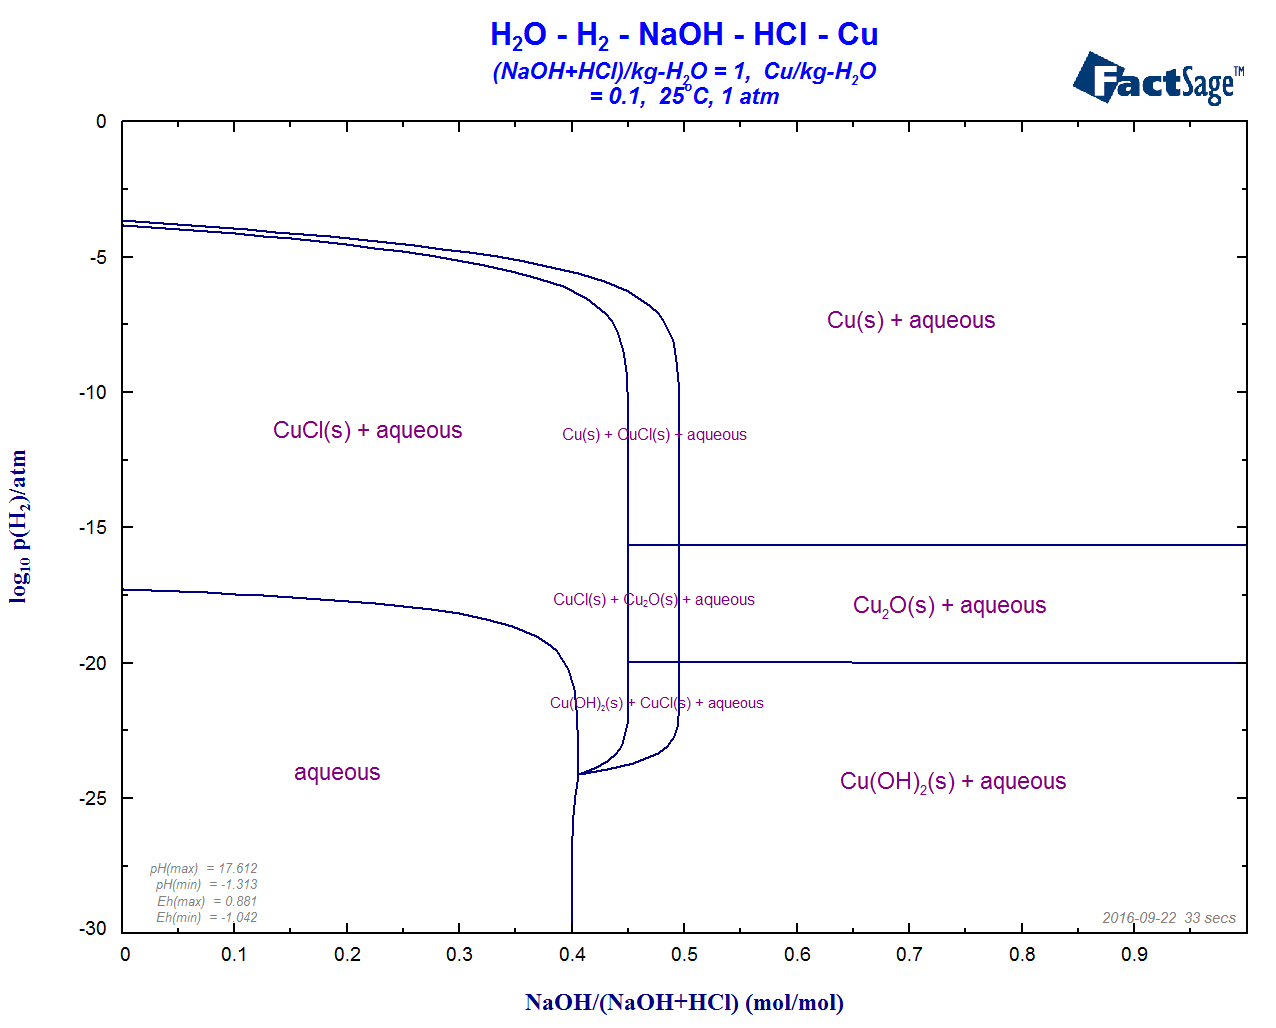 Whats New In Phase Diagram Here Are Some Useful Diagrams To Help You With Measuring Your Windows Aqueous Of The H2o Cu Naoh Hcl H2 Log10ph2 Versus Molar Ratio At Mcu 01